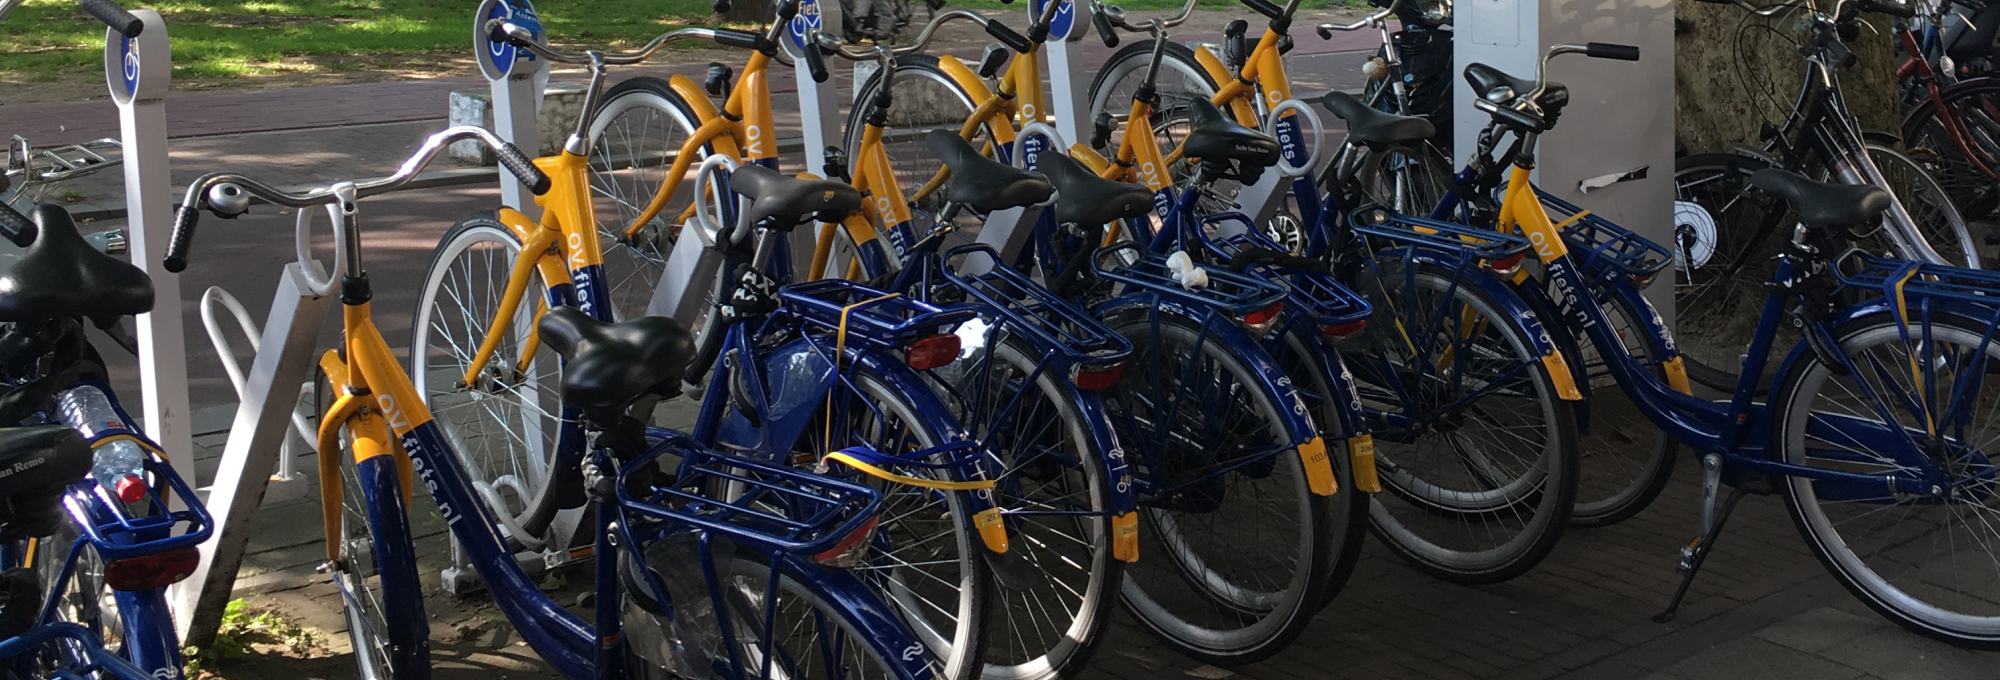 Bikeshare bicycles parked at a bicycle rack